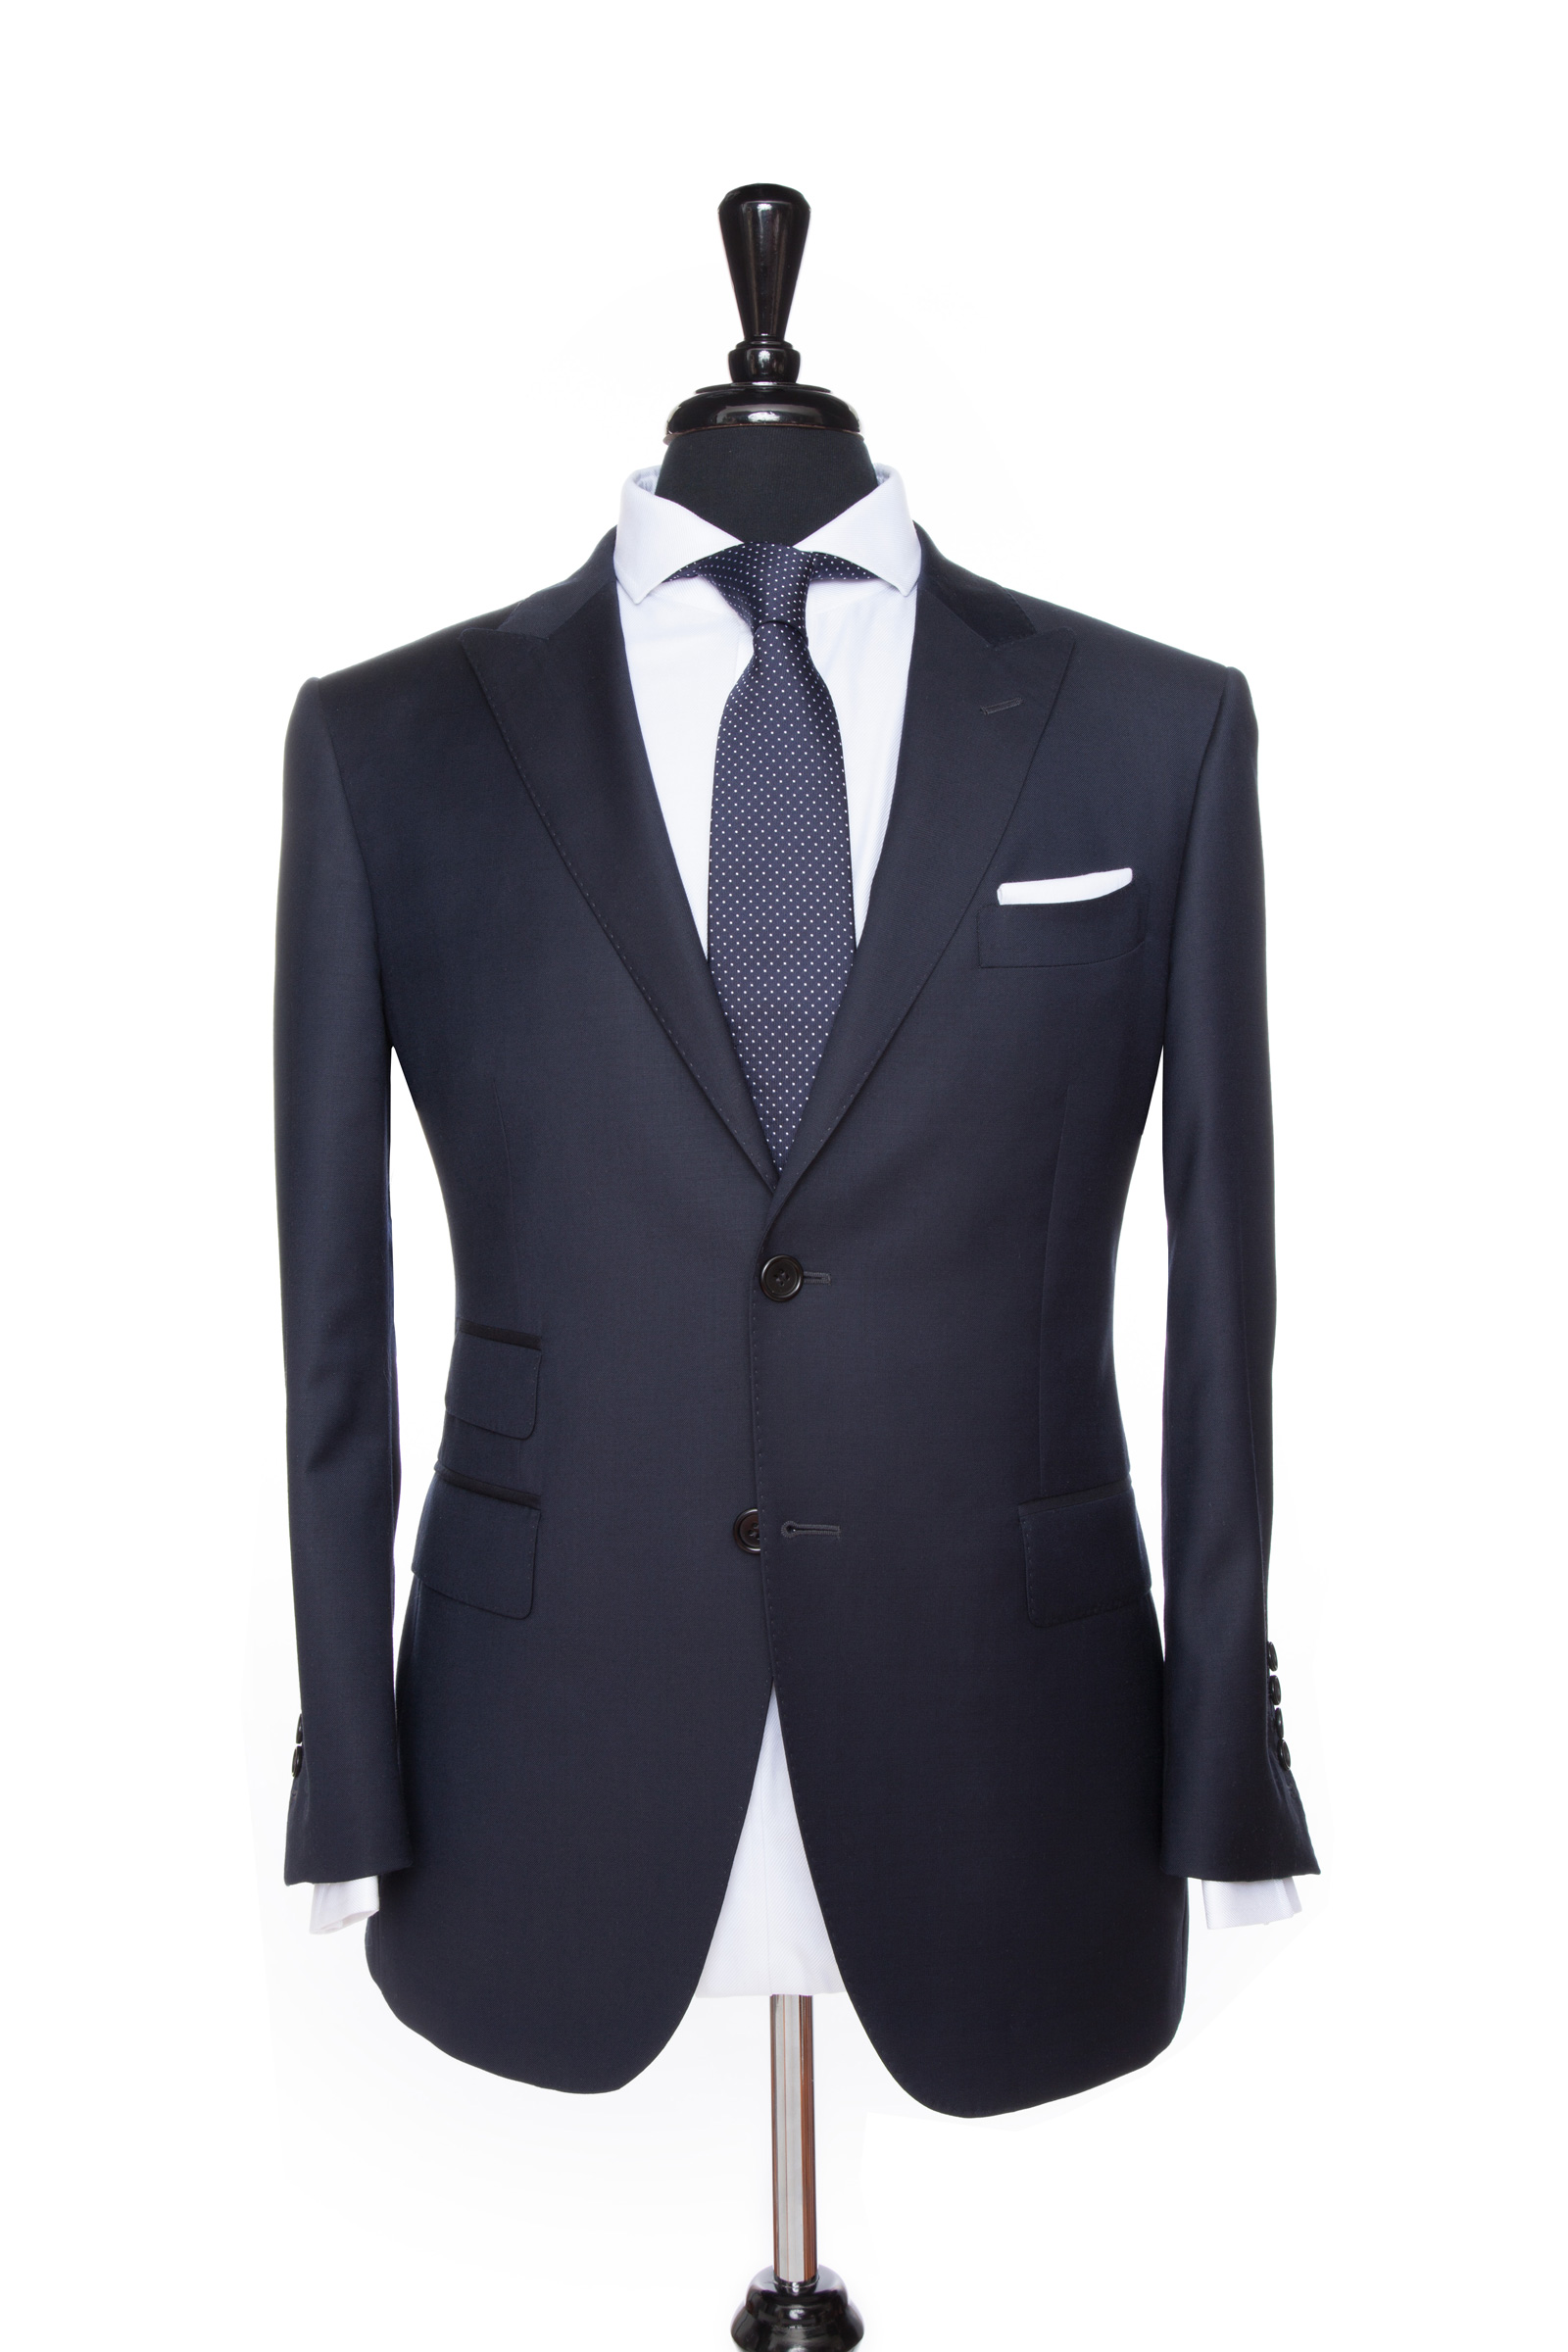 52acb2f9ac8eb Front Mannequin View of Pocket Square's Manhattan Midnight Navy Suit with  peak lapels and black buttons